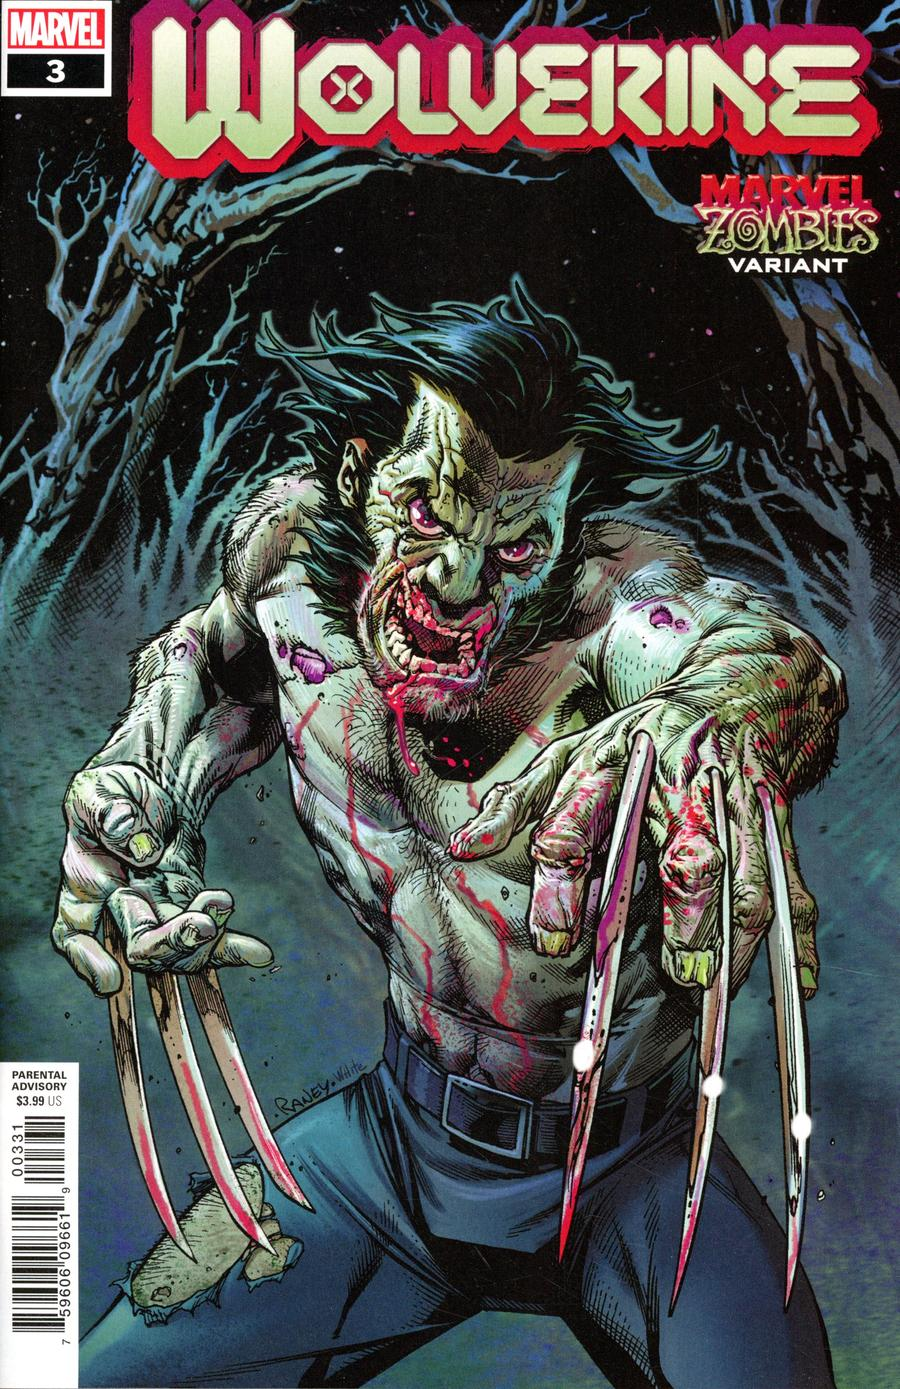 Wolverine Vol 7 #3 Cover B Variant Tom Raney Marvel Zombies Cover